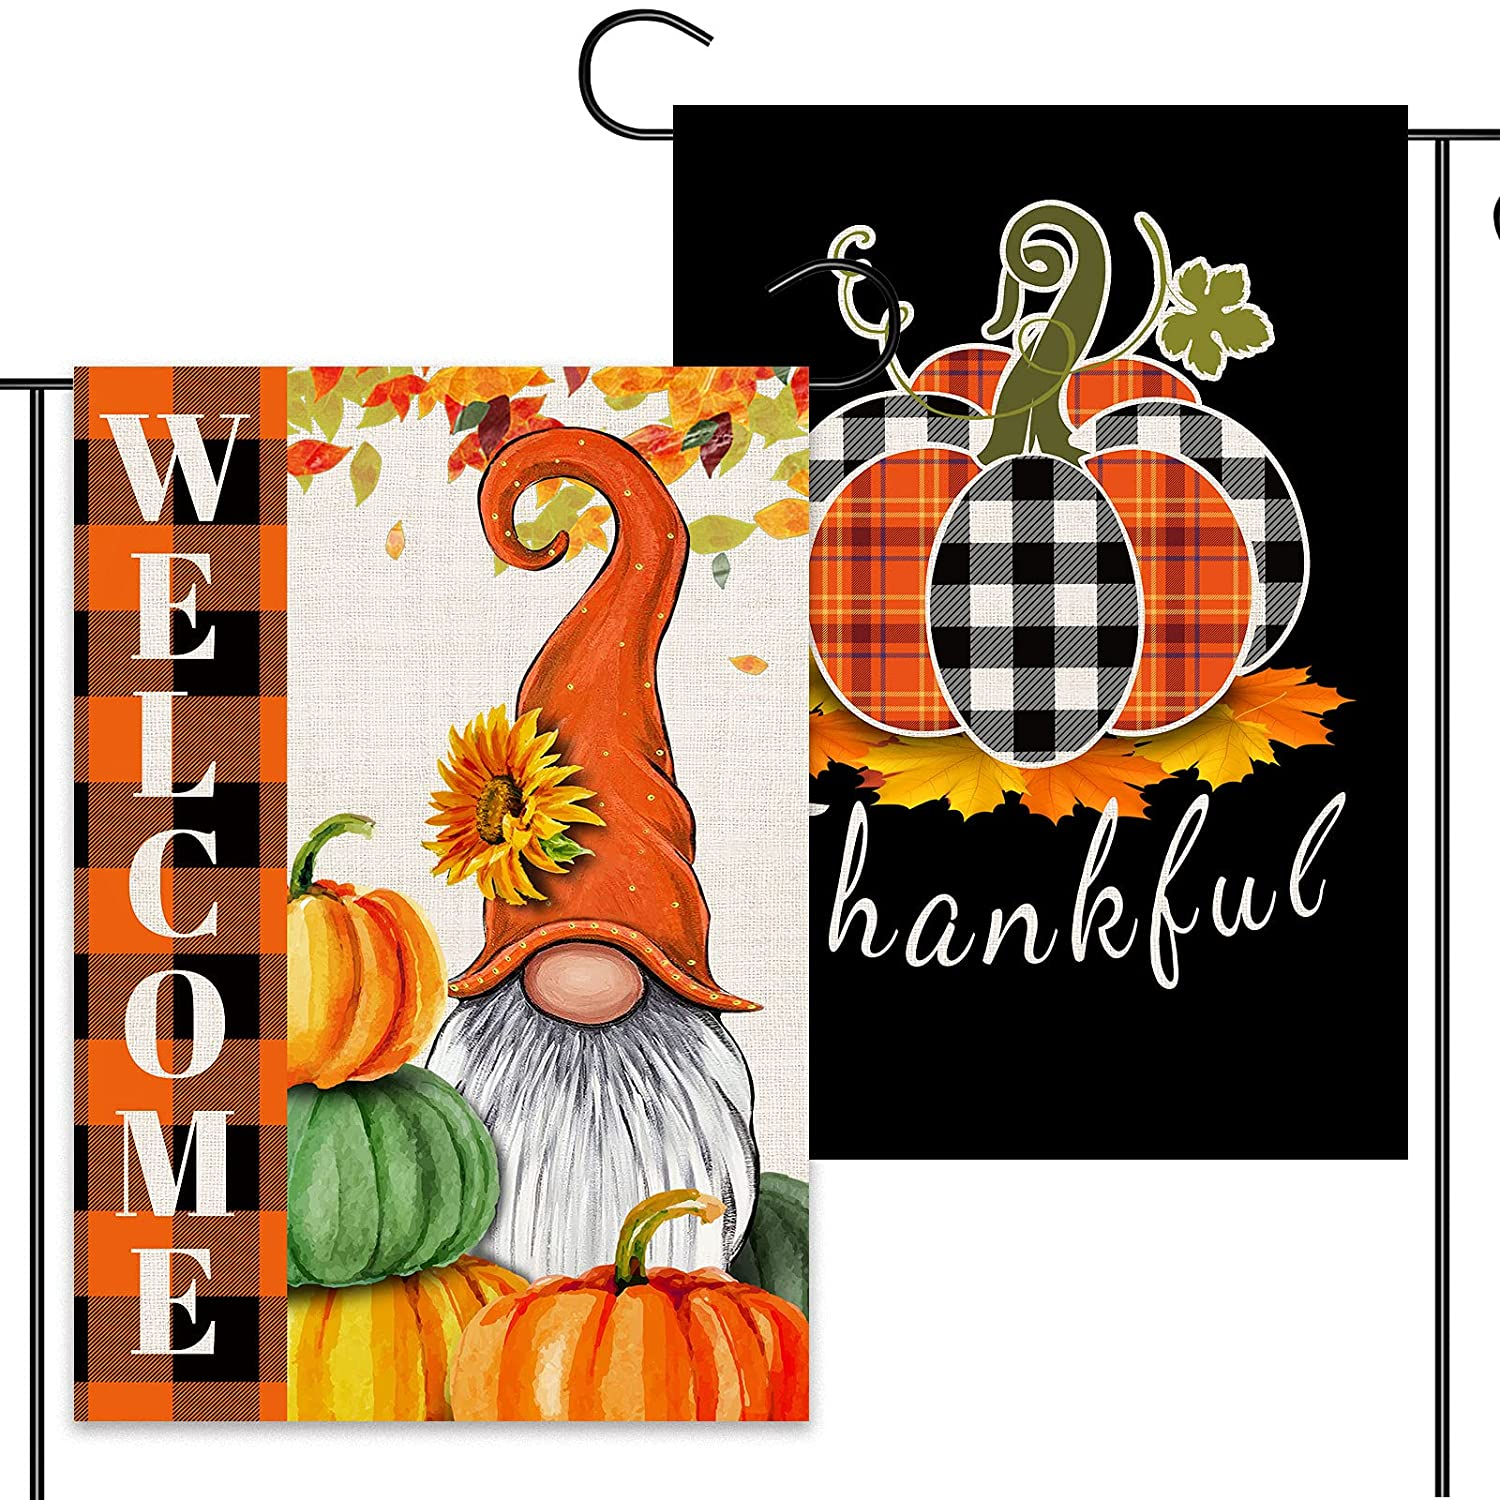 2 Pcs Harvest Fall Garden Flags 12x18 Double Sided, Burlap Buffalo Plaid Gnome And Black Base Thankful Pumpkin Garden Flags, Thanksgiving Outdoor Decorations Harvest Farmhouse Welcome Sign